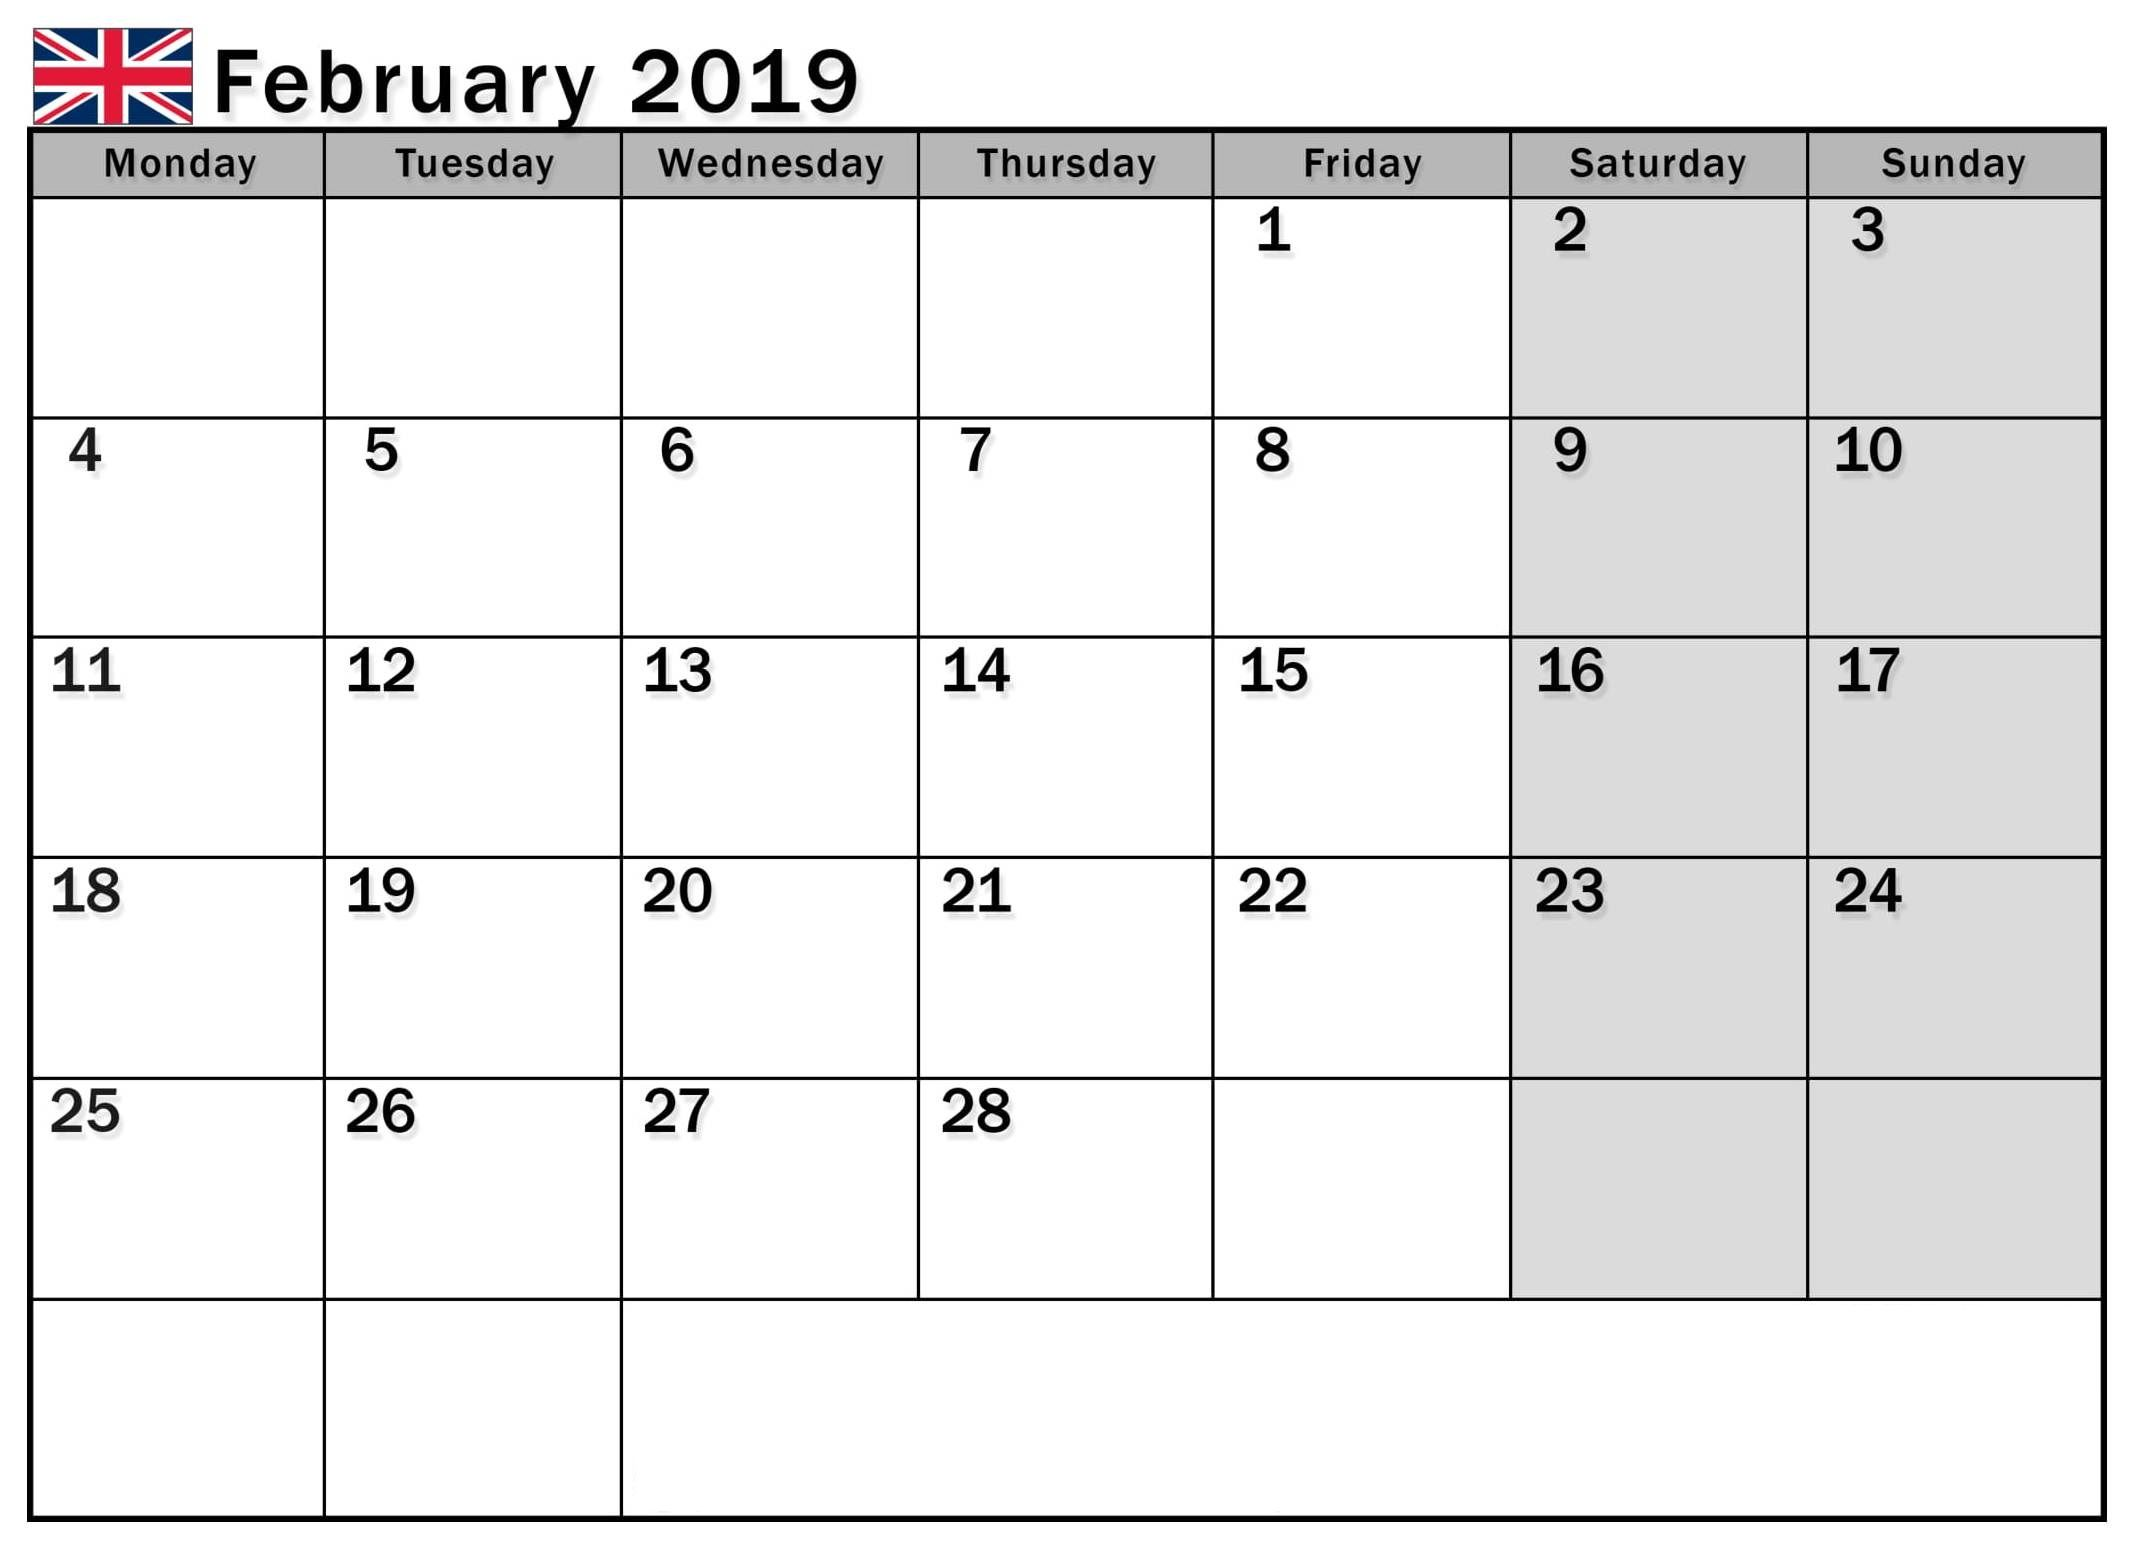 February 2019 Calendar Uk Printable With Holidays With Images